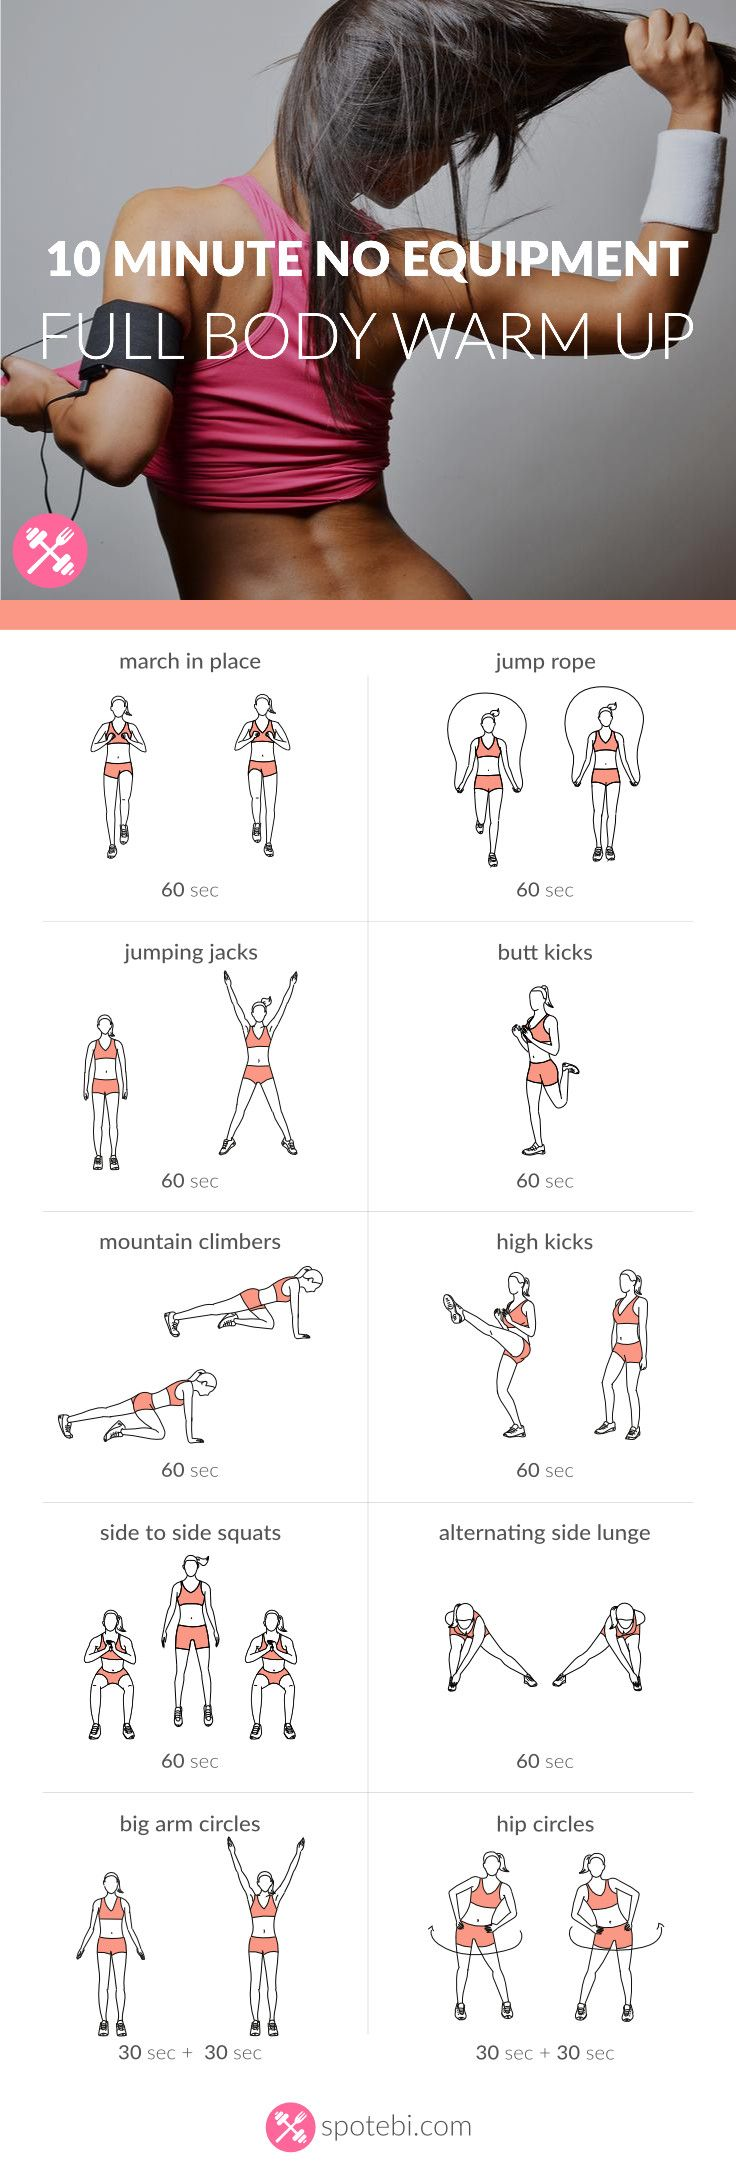 Complete this 10 minute warm up routine to prepare your full body for a workout. Strengthen your heart and burn some calories with these aerobic exercises. http://www.spotebi.com/workout-routines/10-minute-no-equipment-full-body-warm-up/